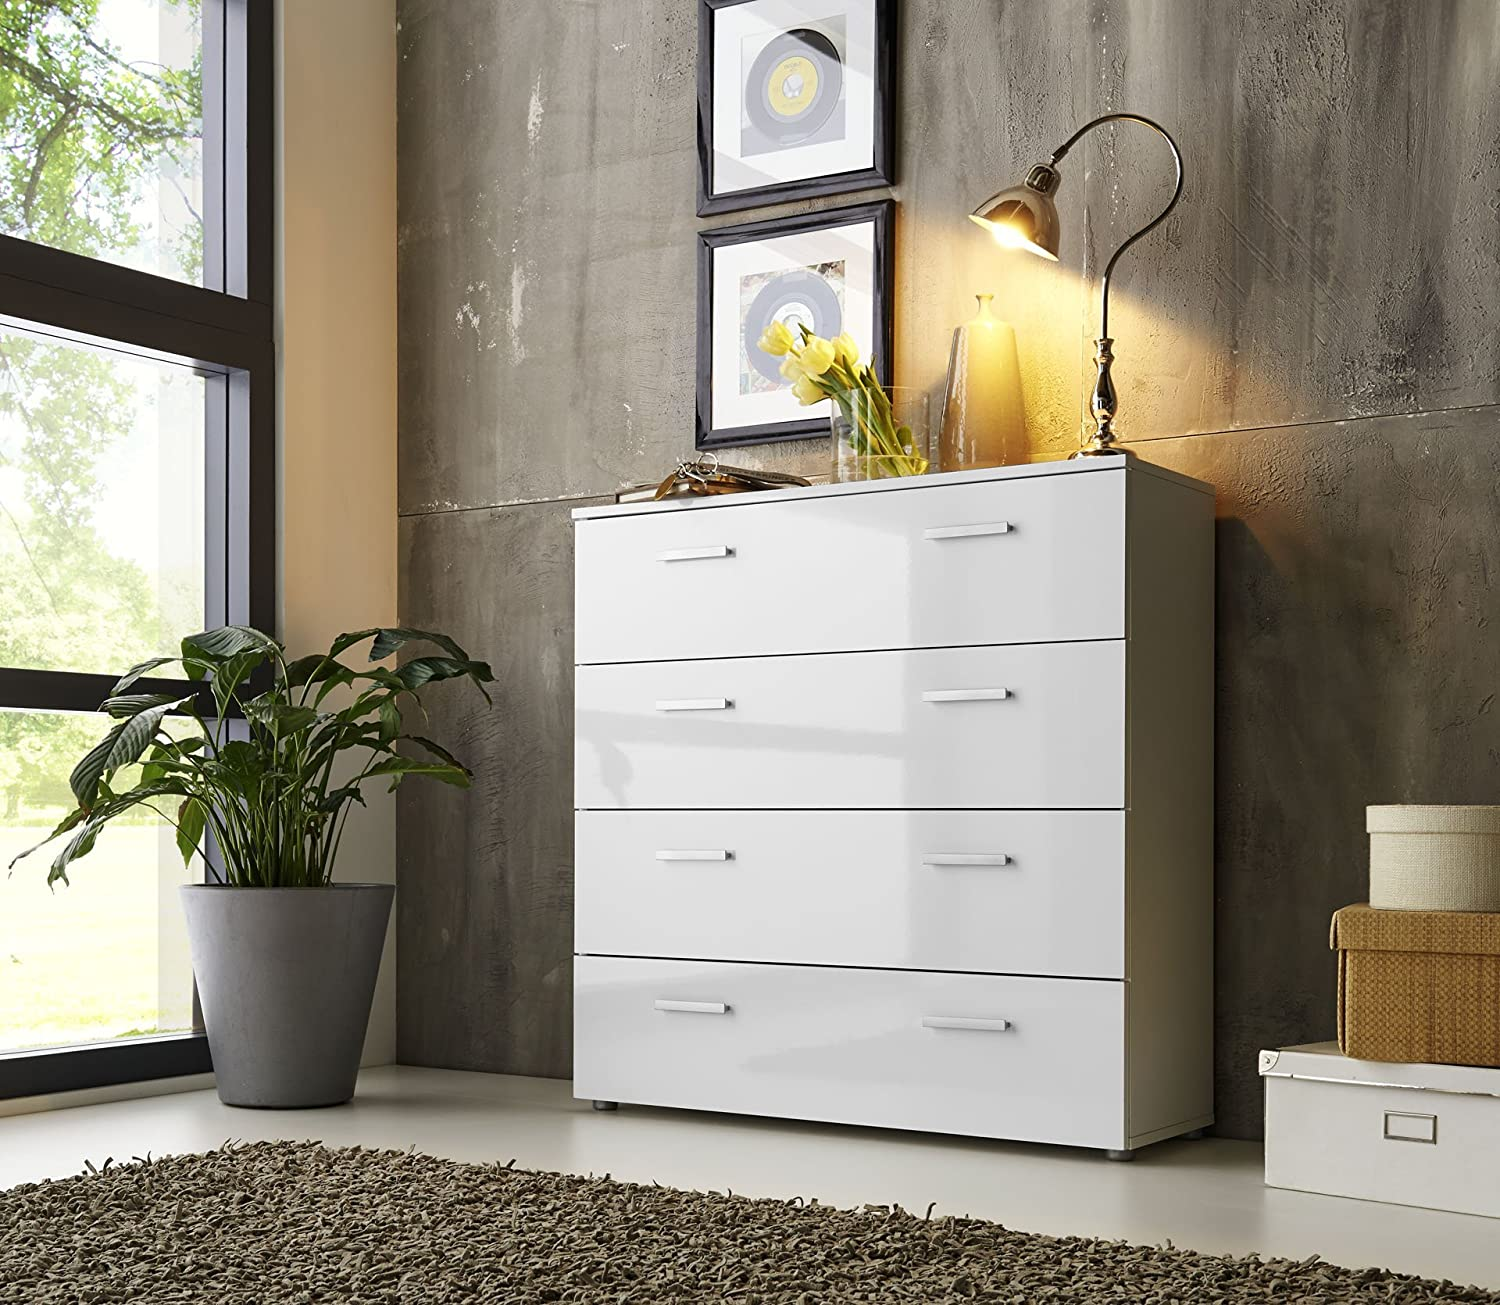 kommode 35 cm tief affordable schubladen kommode sideboard anrichte marbella in hochglanz wei. Black Bedroom Furniture Sets. Home Design Ideas